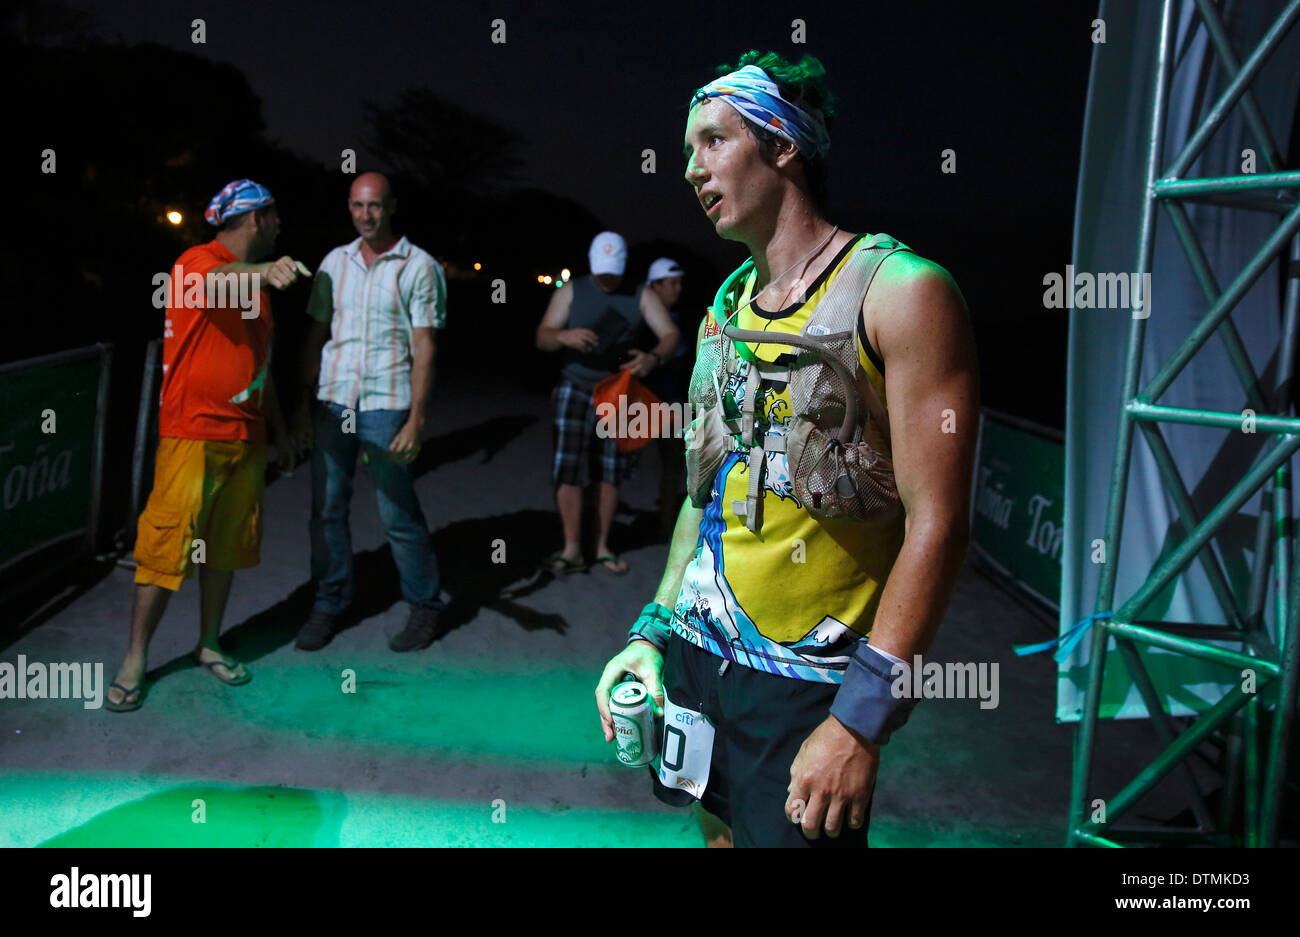 Nick Hollon after finishing first in the 2014 100k ultra marathon 'Fuego y Agua', Ometepe Island, Nicaragua - Stock Image